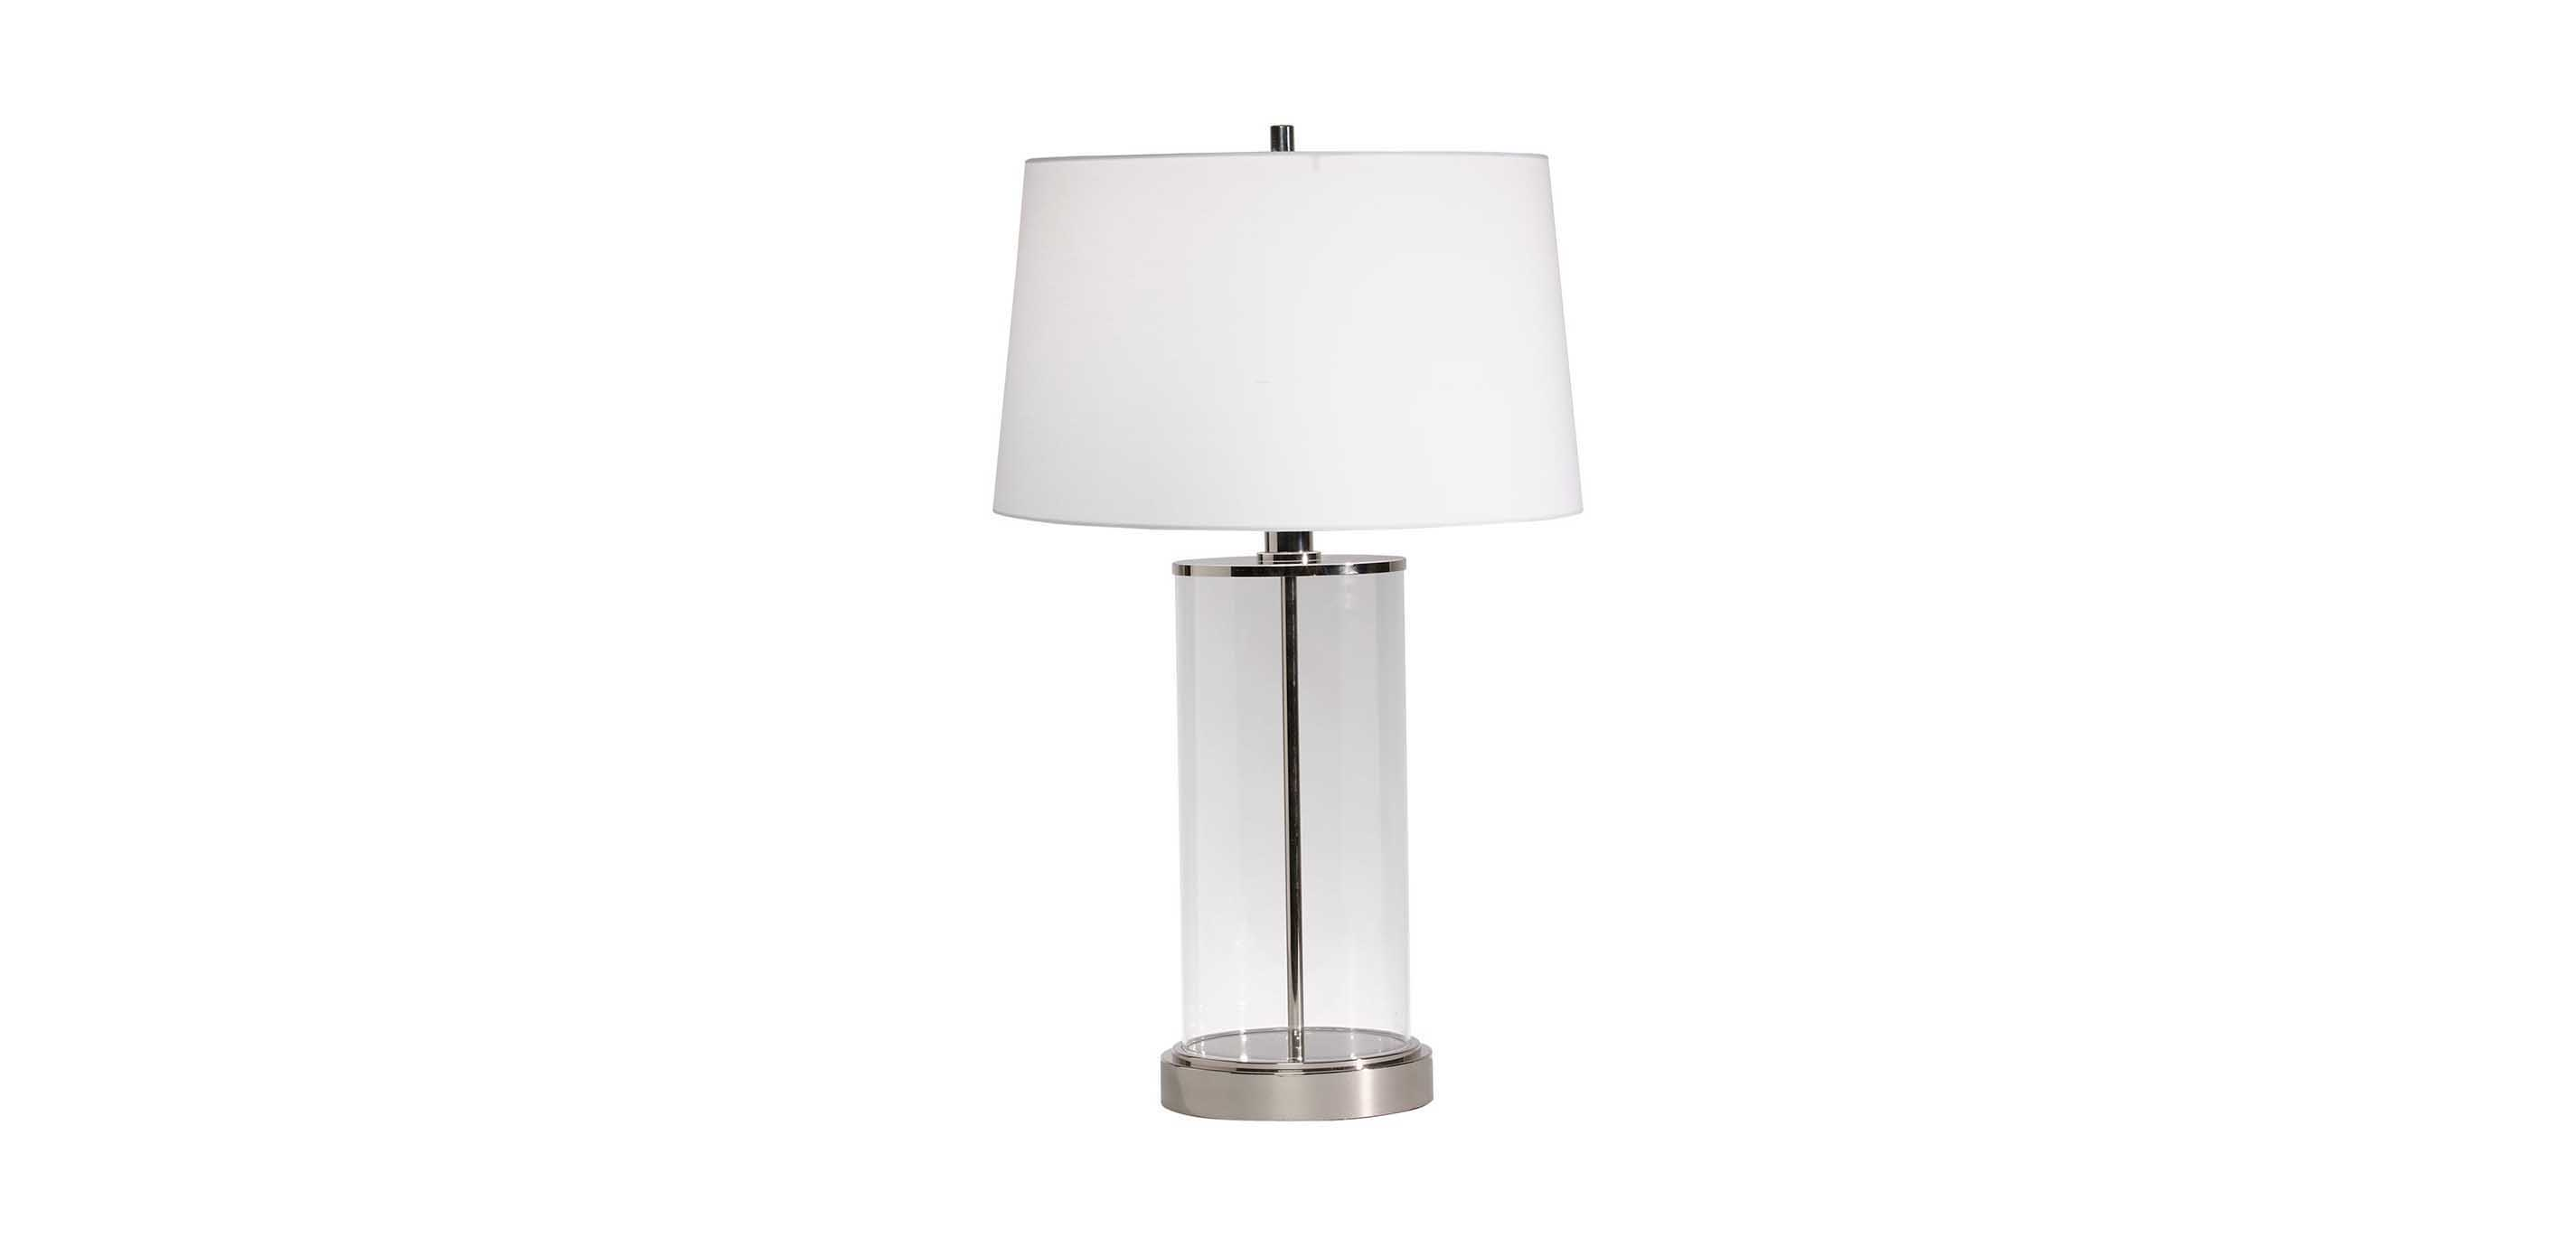 Glass cylinder table lamp table lamps ethan allen images null aloadofball Image collections